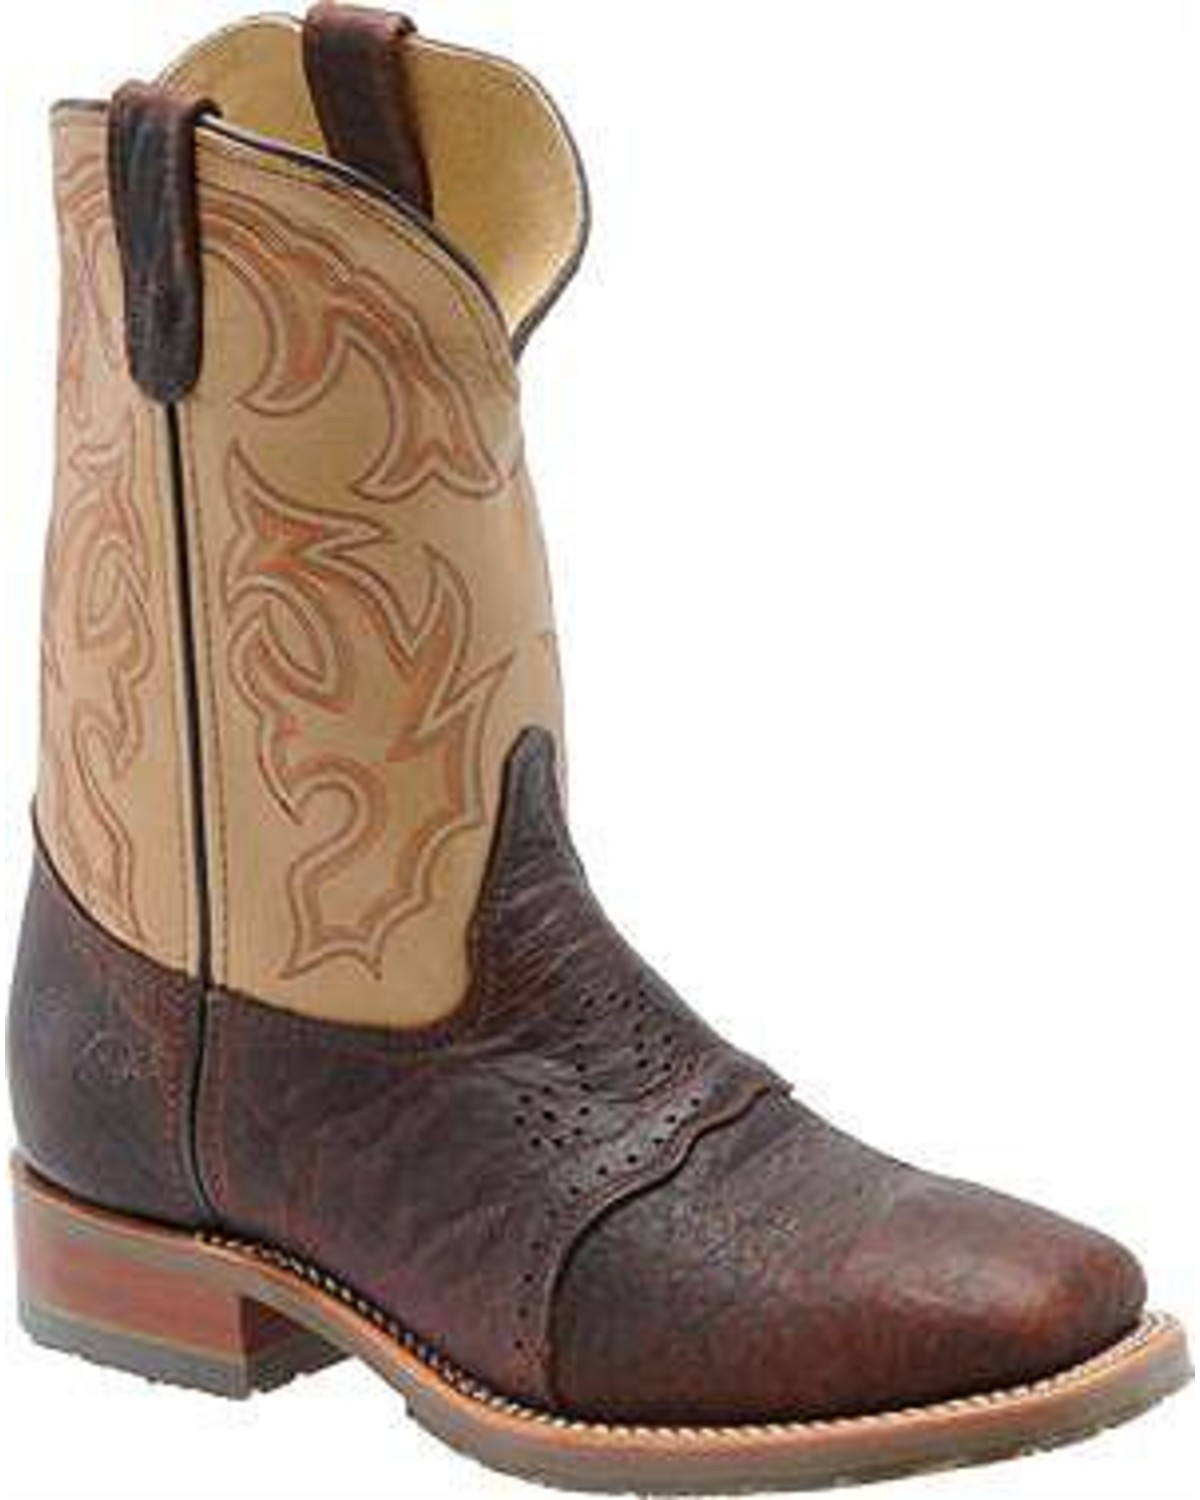 2f0d0ce9ae0 Double-H Men's Square Steel Toe Western Boots